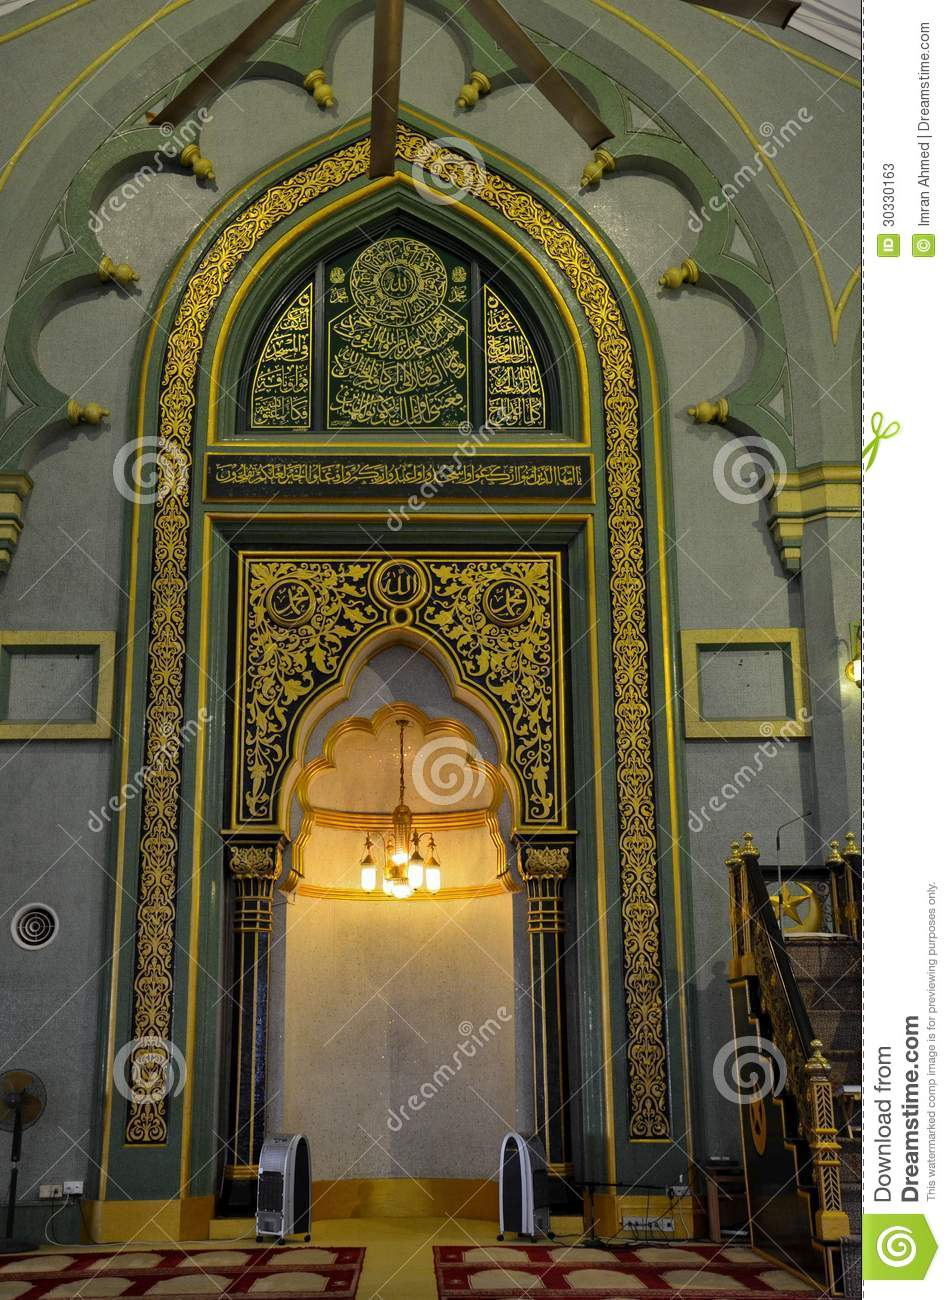 Mihrab prayer niche sultan mosque singapore stock photos for Islamic wall clock singapore